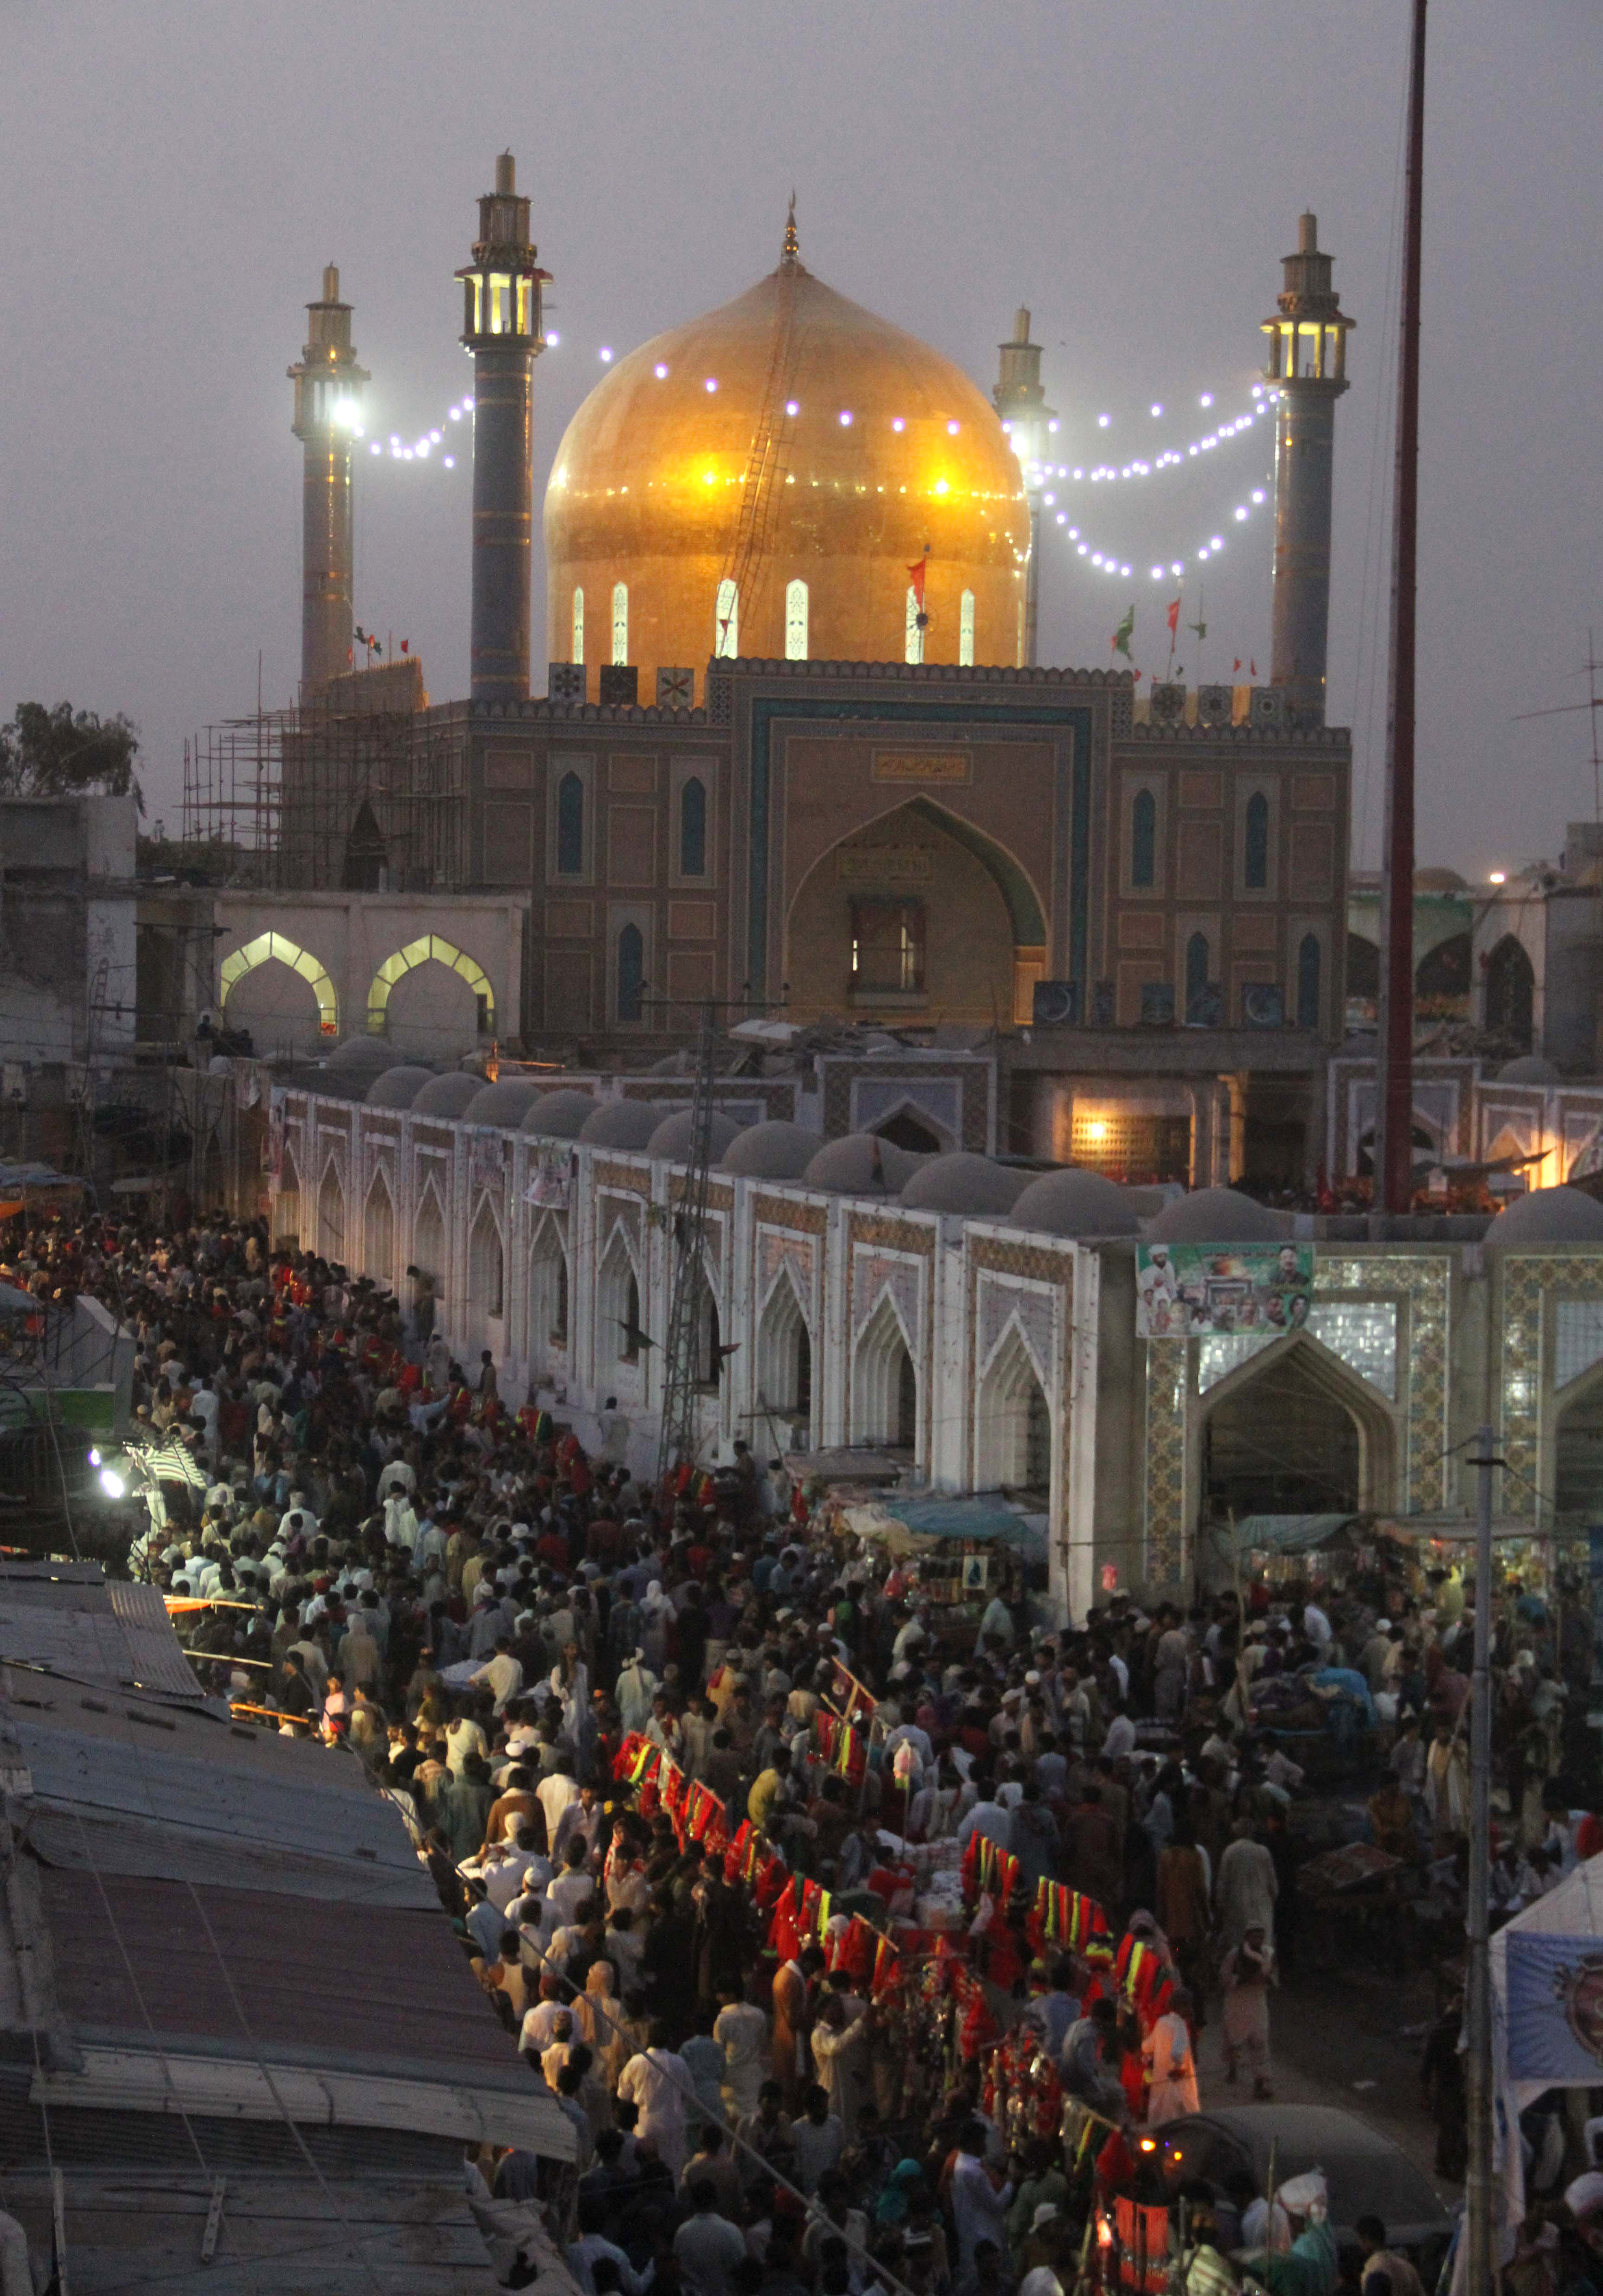 In this photograph taken on June 18, 2014, Pakistani devotees gather at the shrine of 13th century Muslim Sufi saint Lal Shahbaz Qalandar in Sehwan, some 200 kilometres (124 miles) northeast of Karachi, on the anniversary of the saint's death. A bomb ripped through a crowded Sufi shrine February 16 killing dozens. [Yousuf Nagori / AFP]